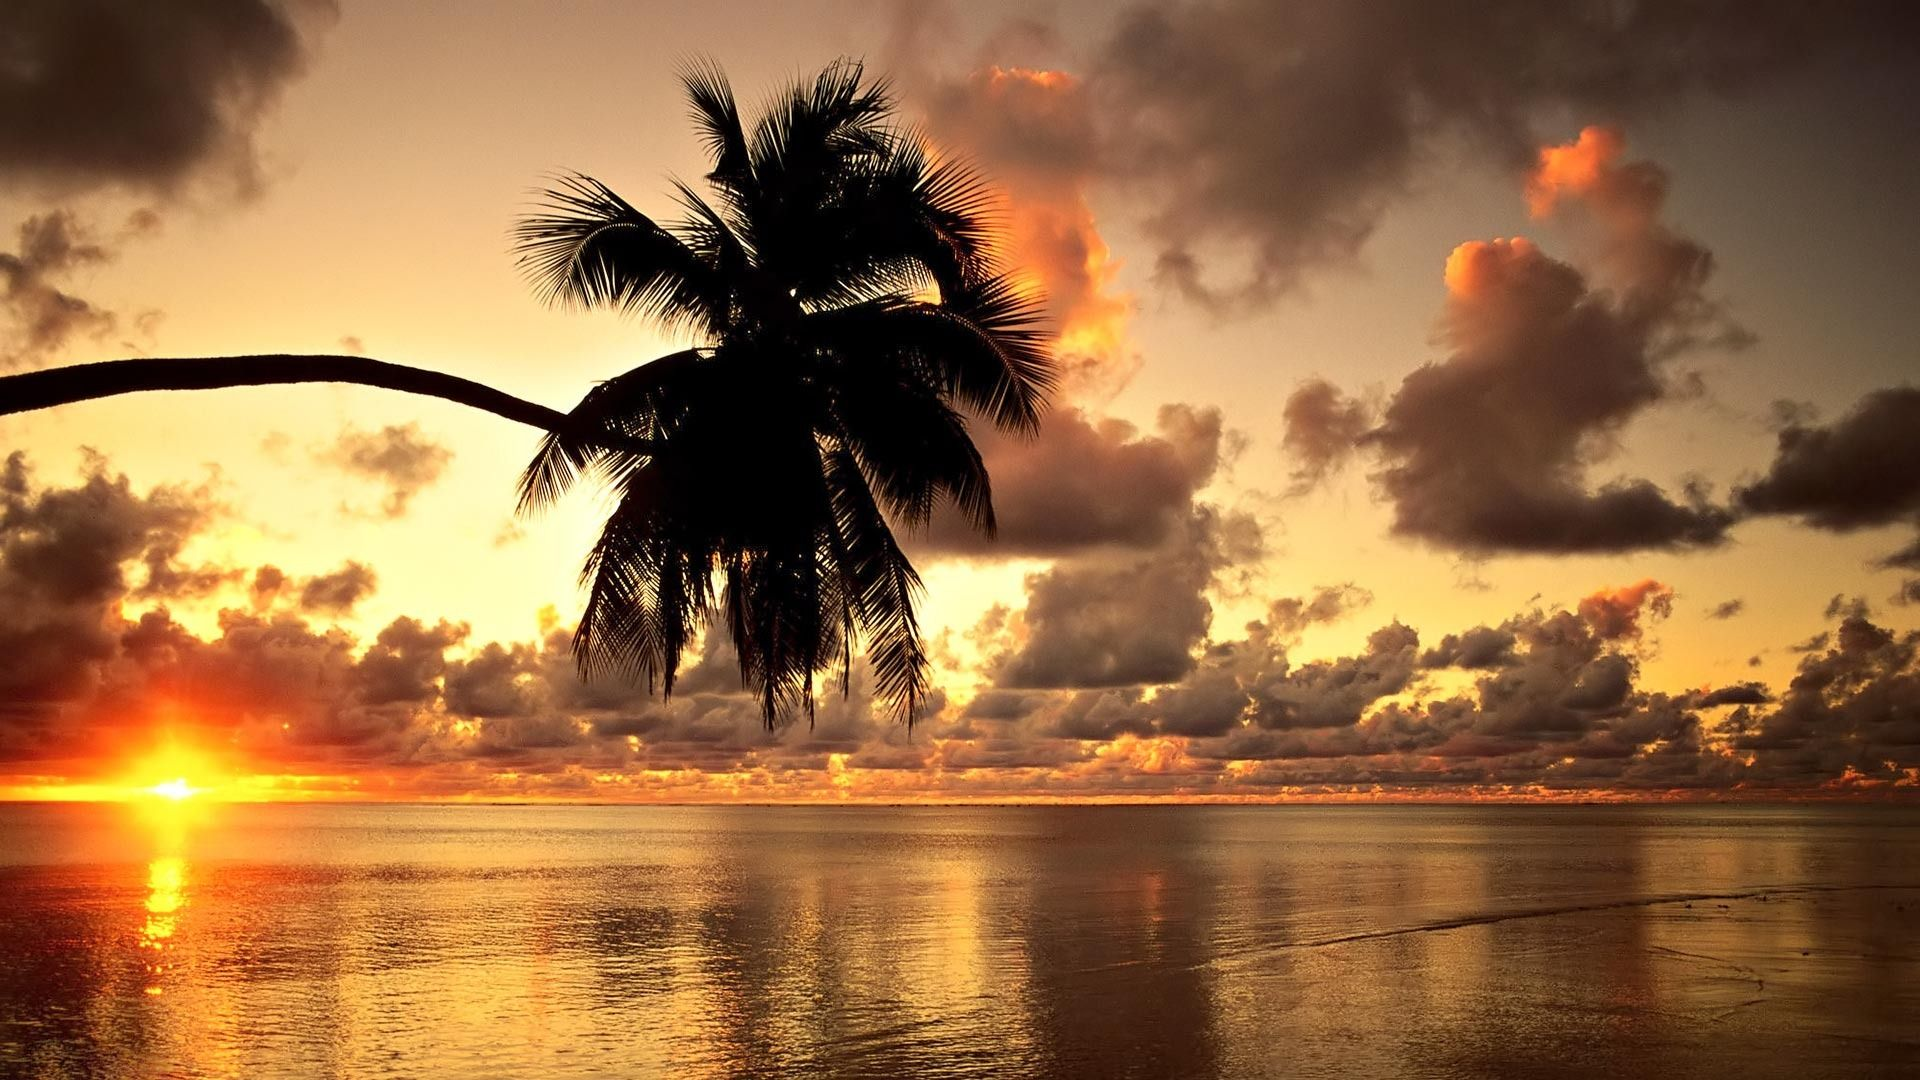 Hawaiian Sunset Beautiful Scenery Wallpaper Beach Sunset Wallpaper Scenery Wallpaper